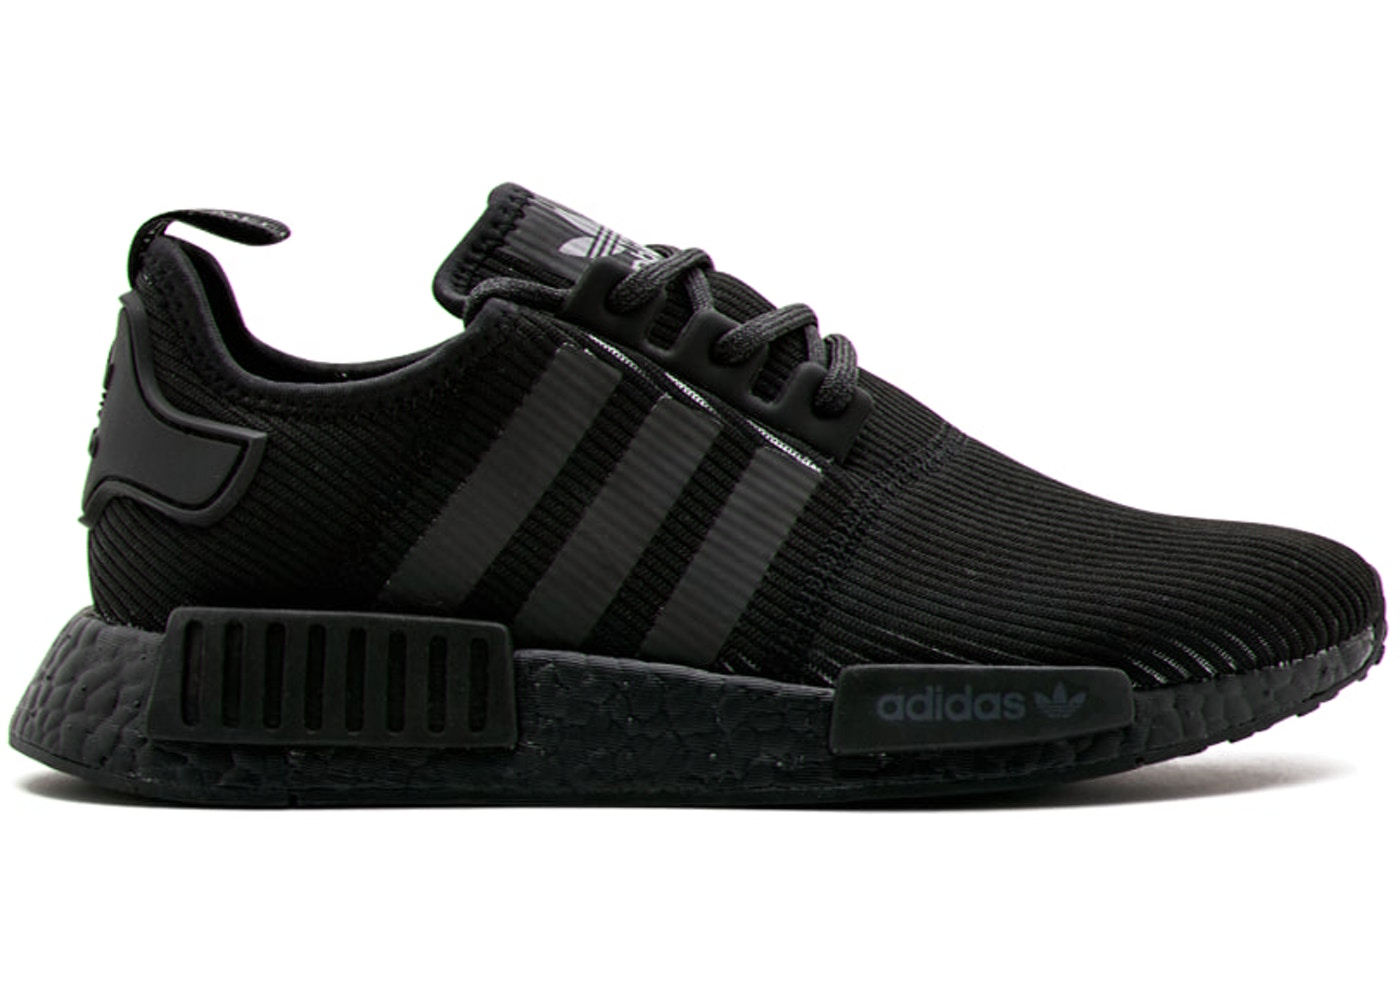 9f4955e36e86 adidas NMD R1 Triple Black Reflective - BY3123